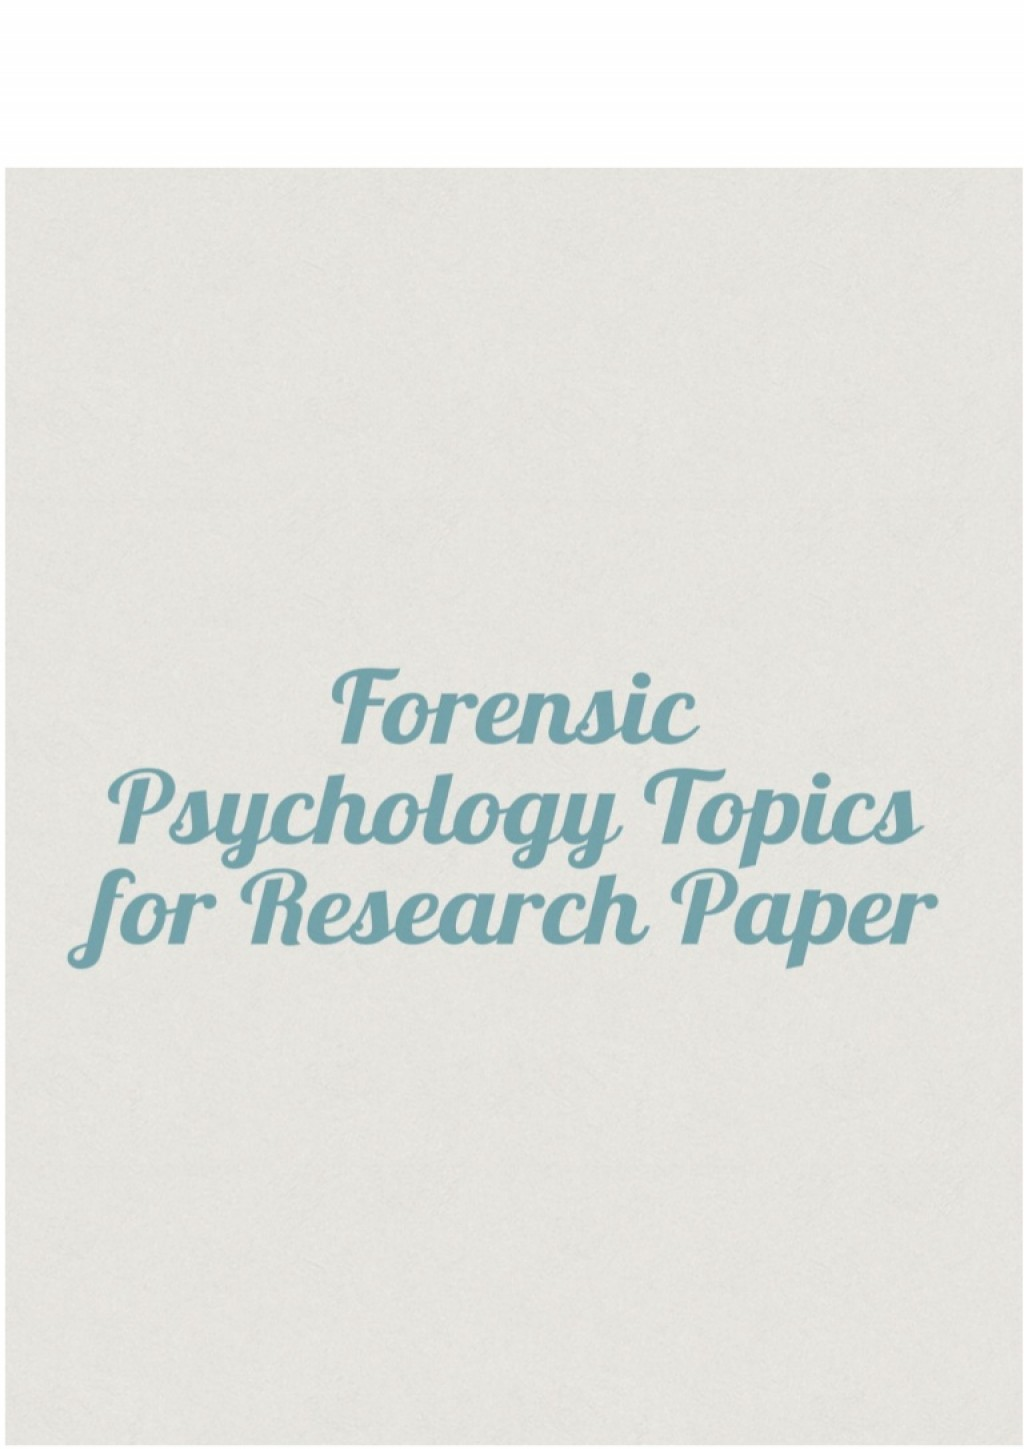 008 Psychology Topics For Research Paper Forensicpsychologytopicsforresearchpaper Thumbnail Wondrous Forensic Child Papers Controversial Large